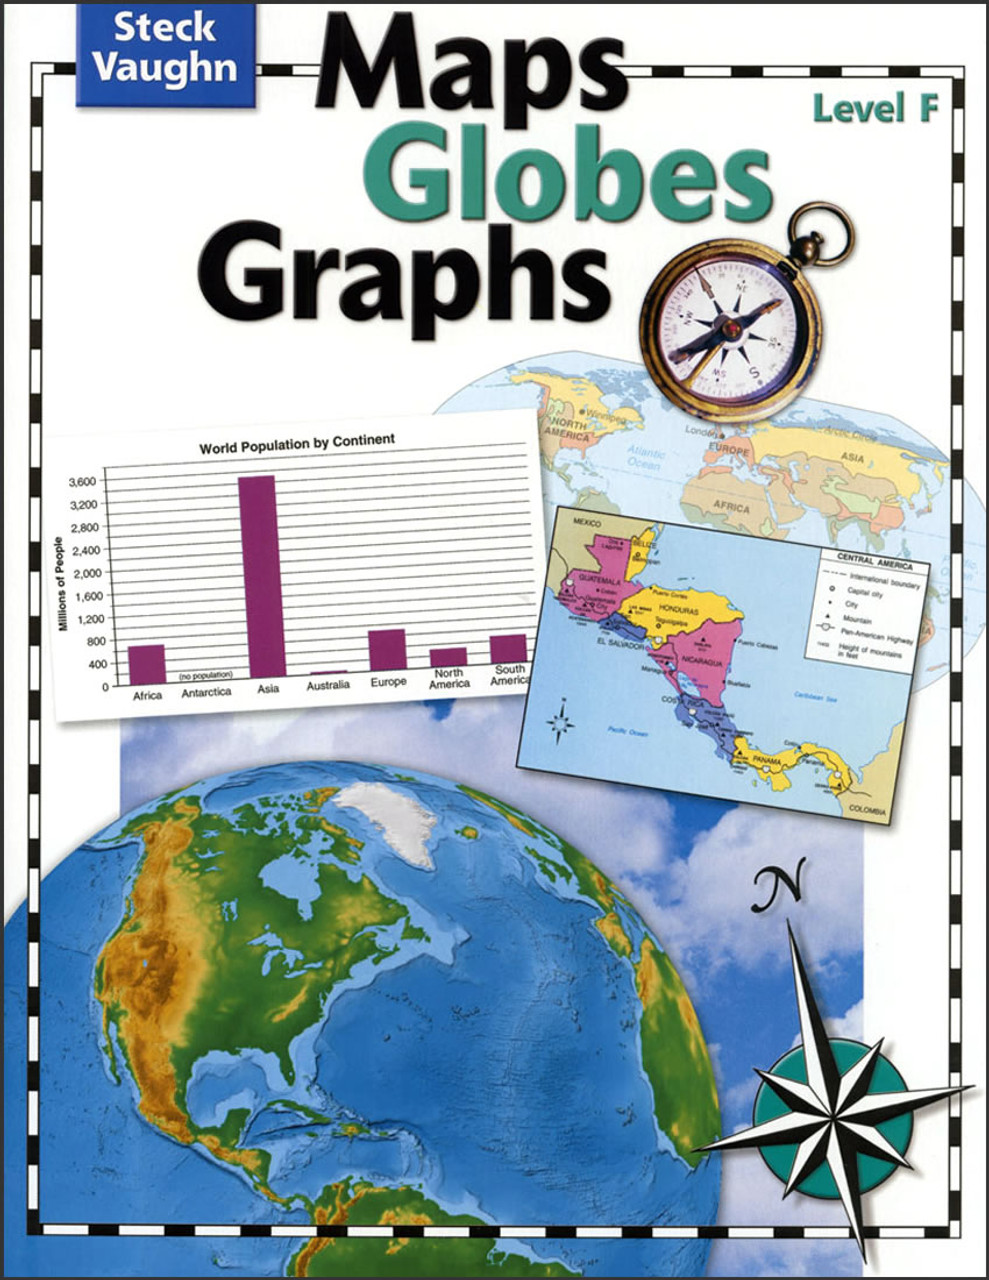 Maps Globes Graphs Level F